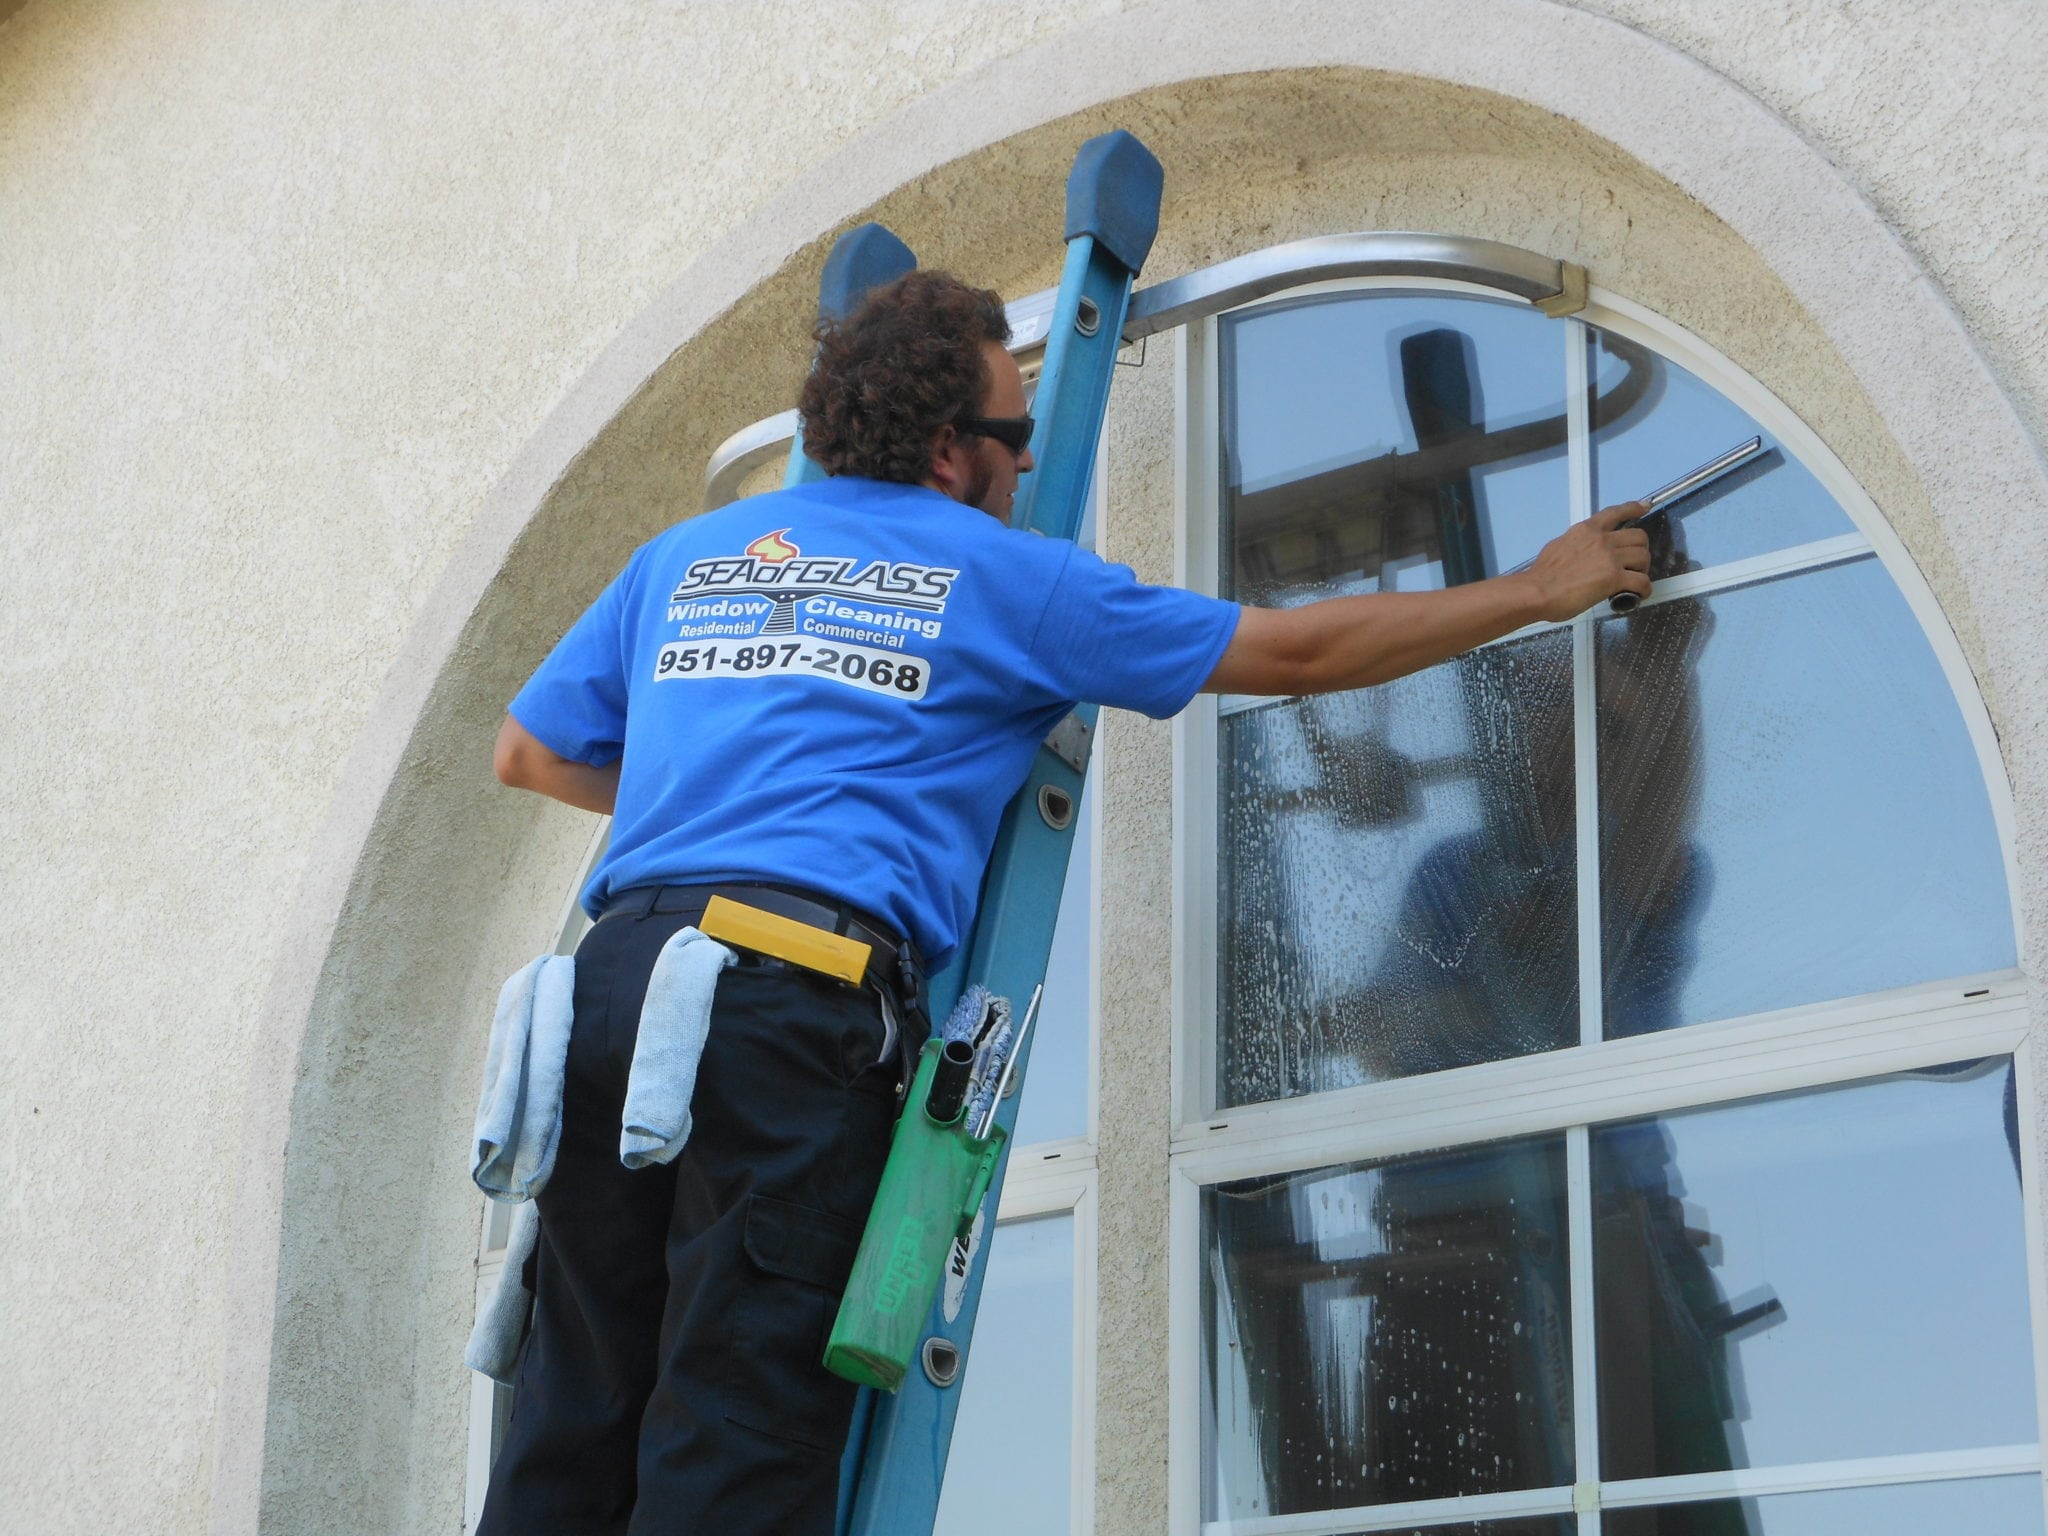 Window Cleaning in Nuevo CA